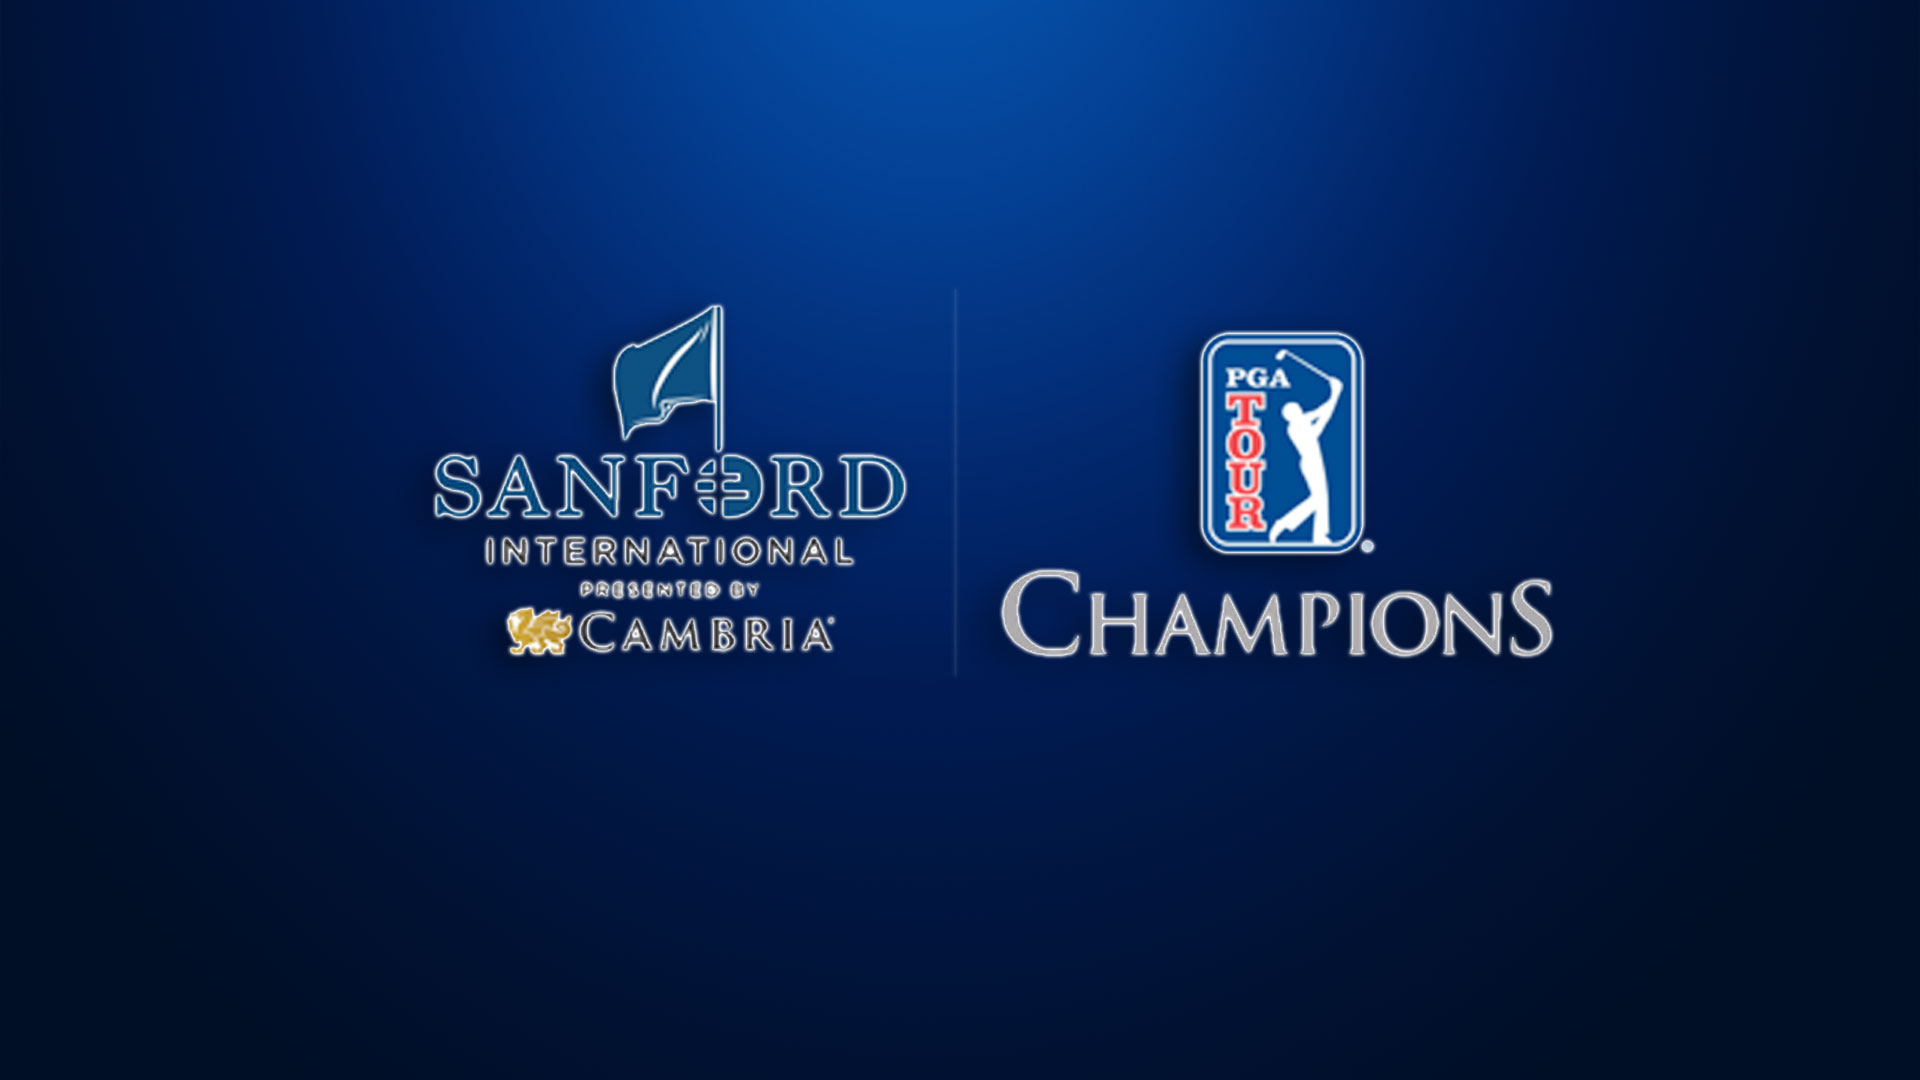 KELO Sanford International PGA champions